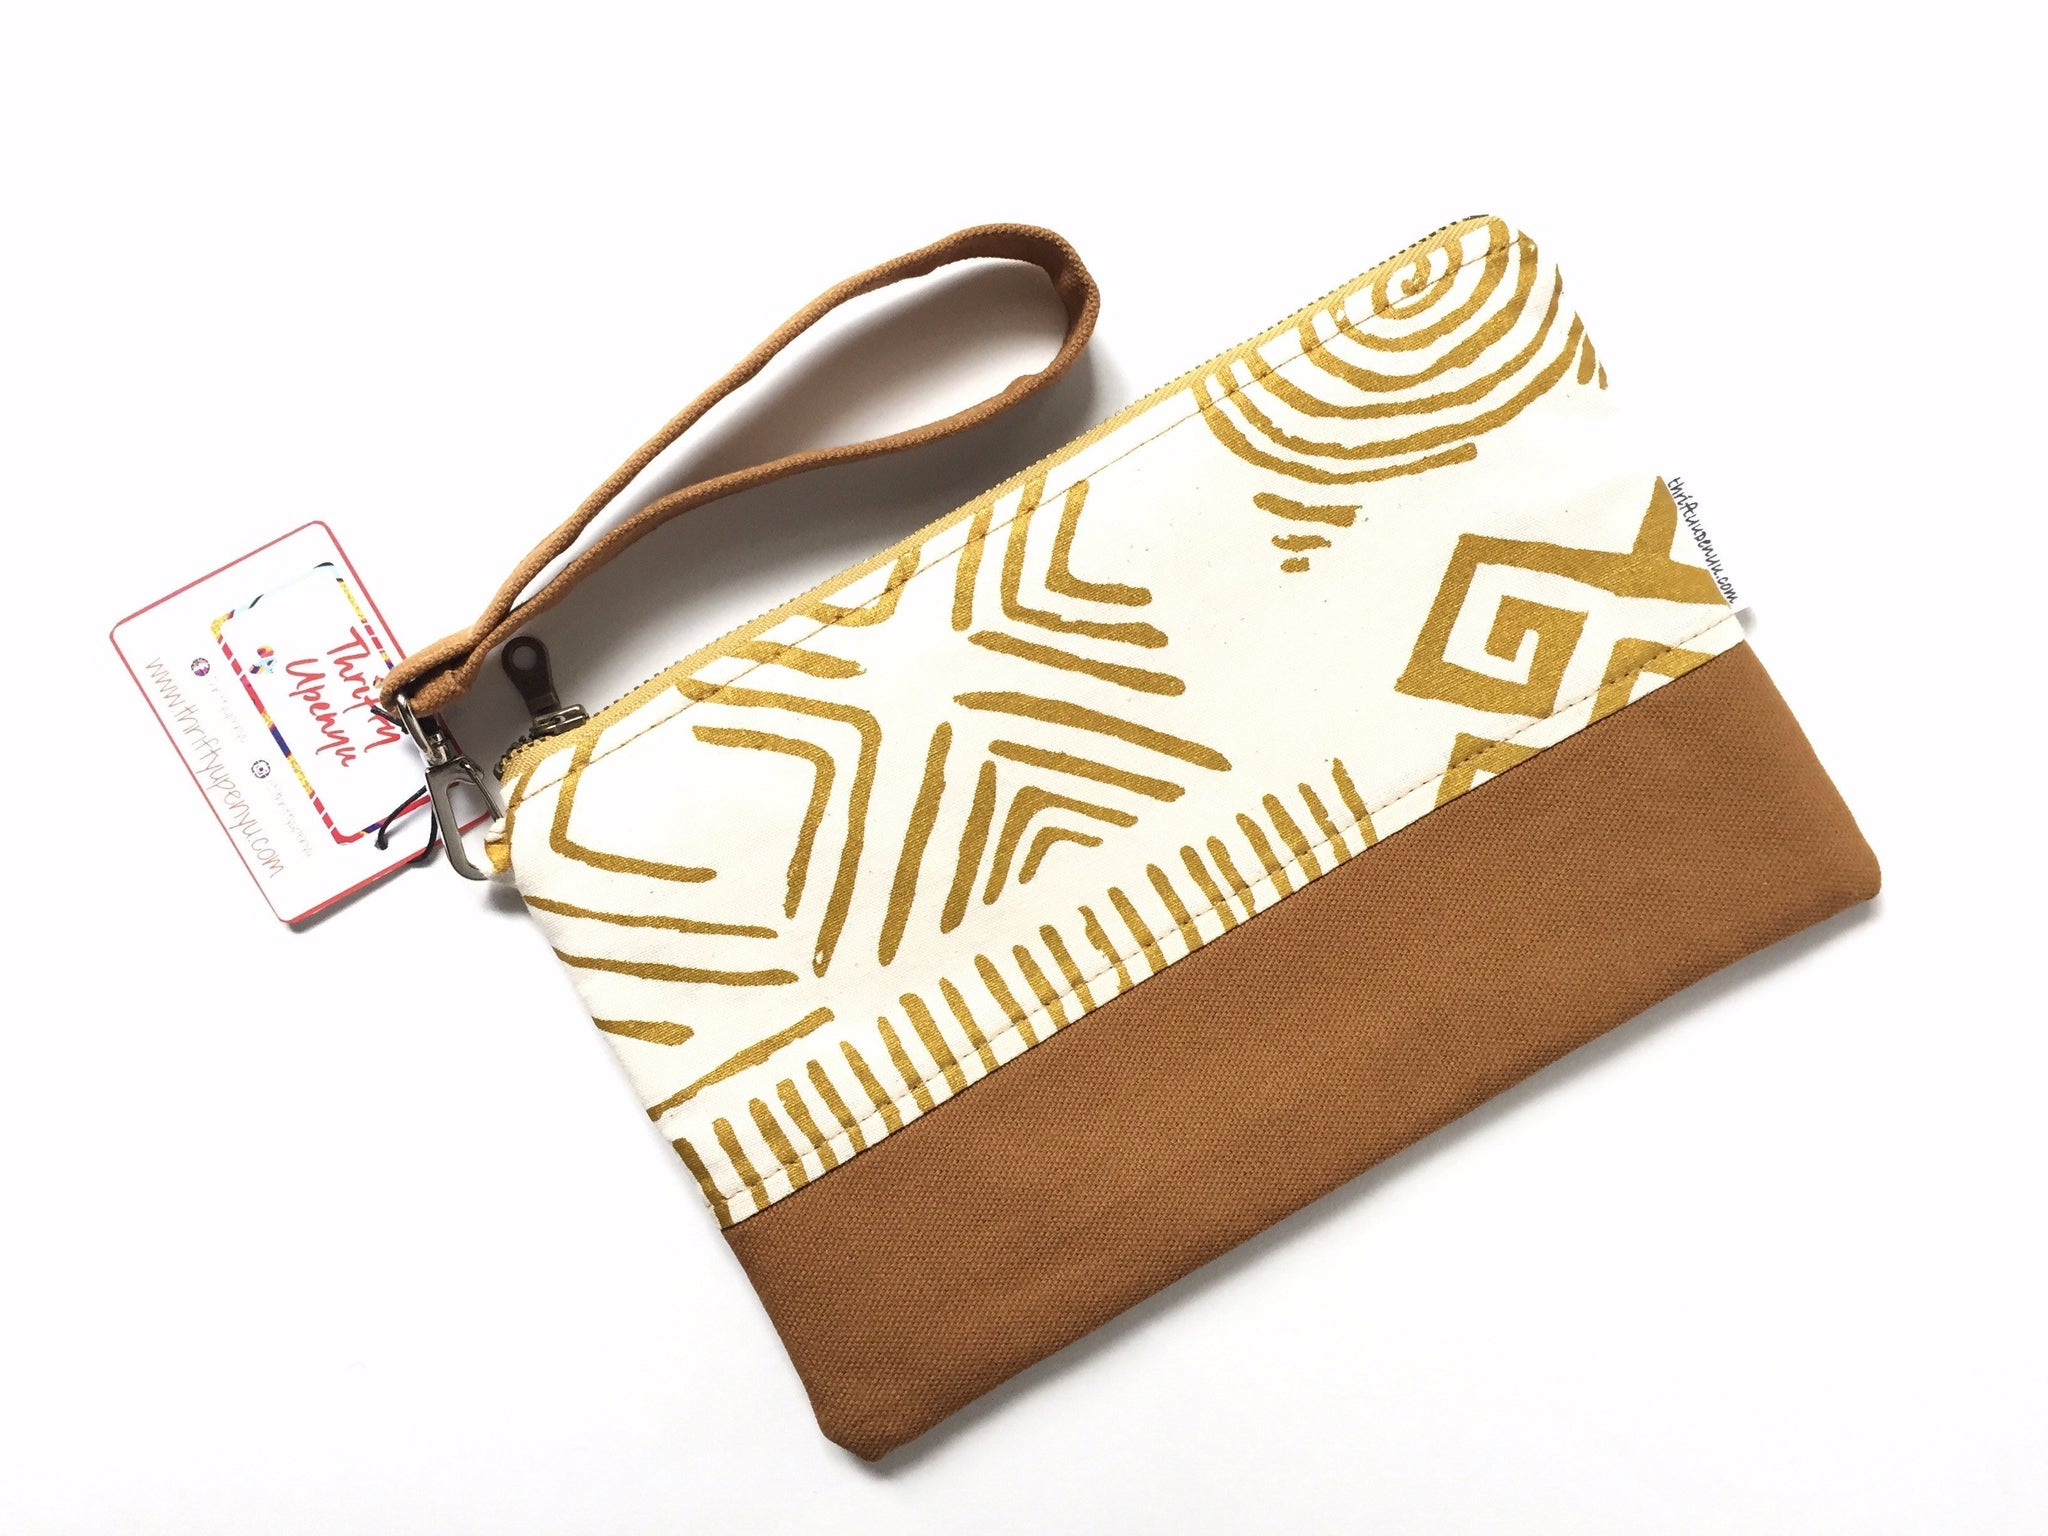 Ankara Zipper Pouch in Tan & Gold